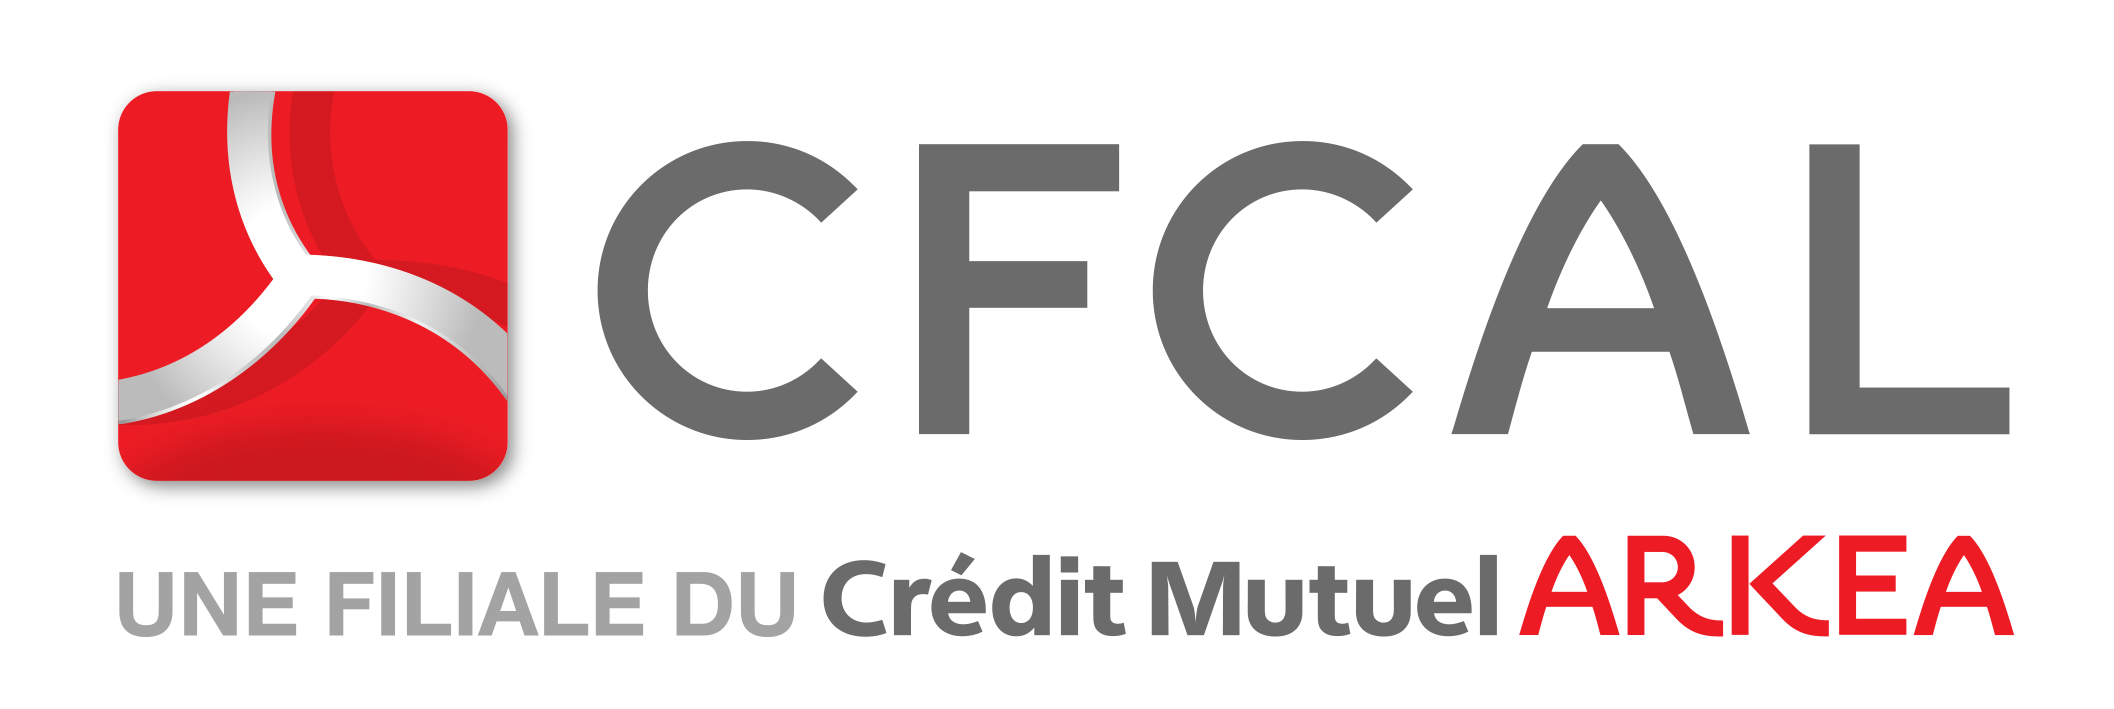 LOGO CFCAL COULEUR